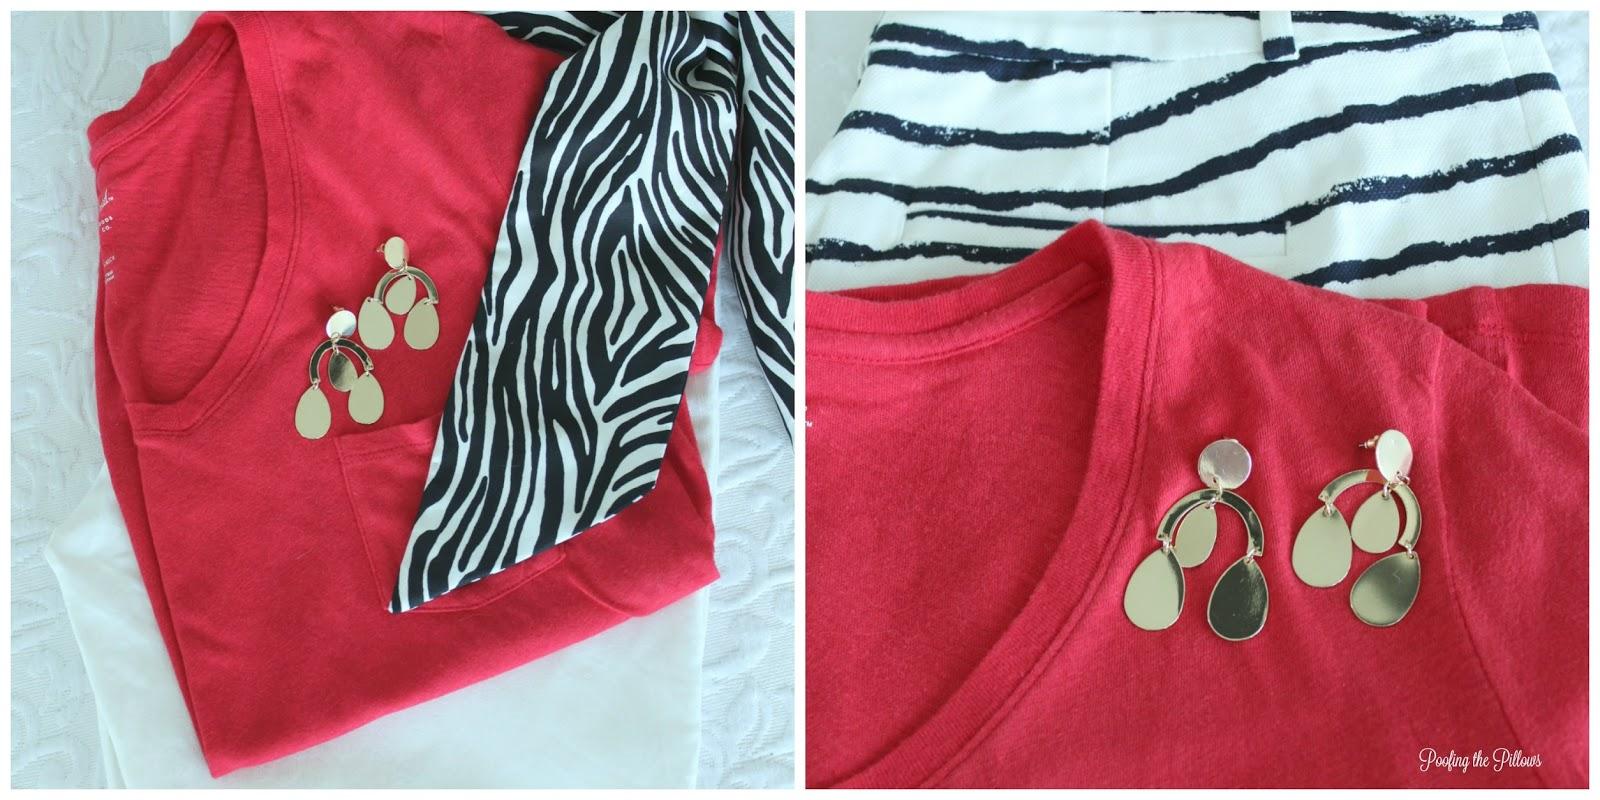 Style on a budget - Red t-shirt styled two ways.